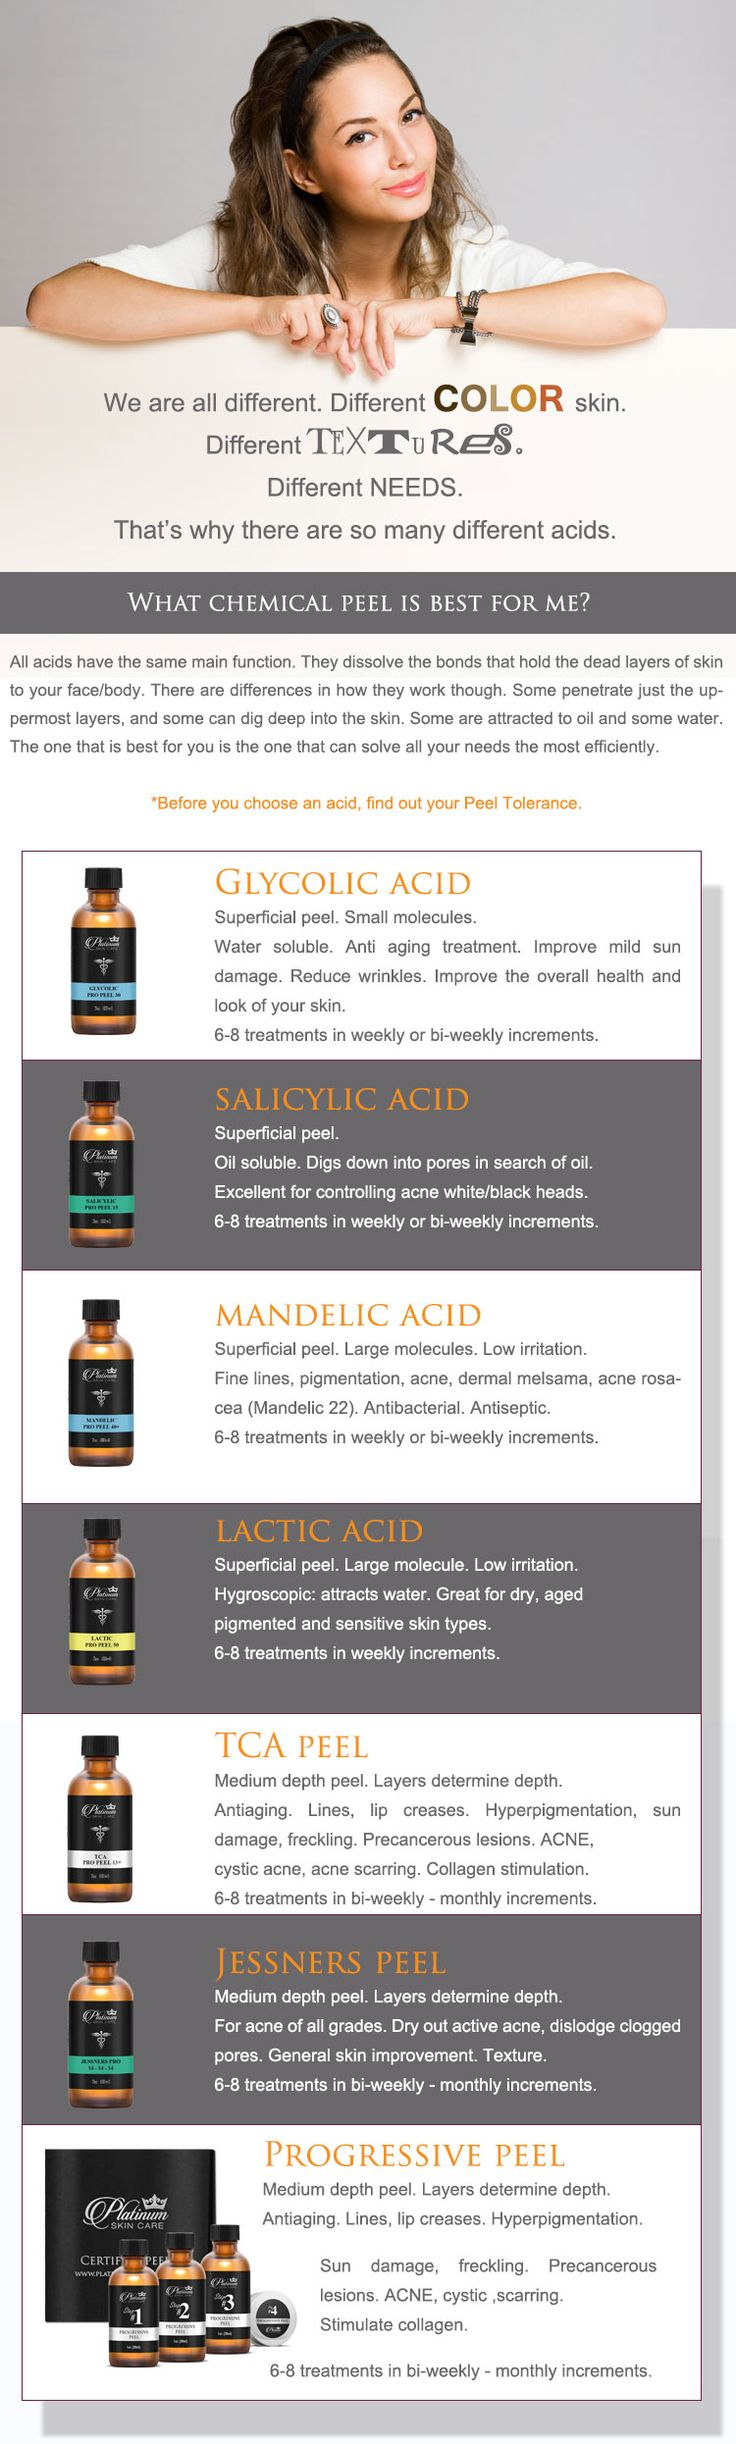 Which acid is best for your skin's needs? Find out on this page full of at home peel information.